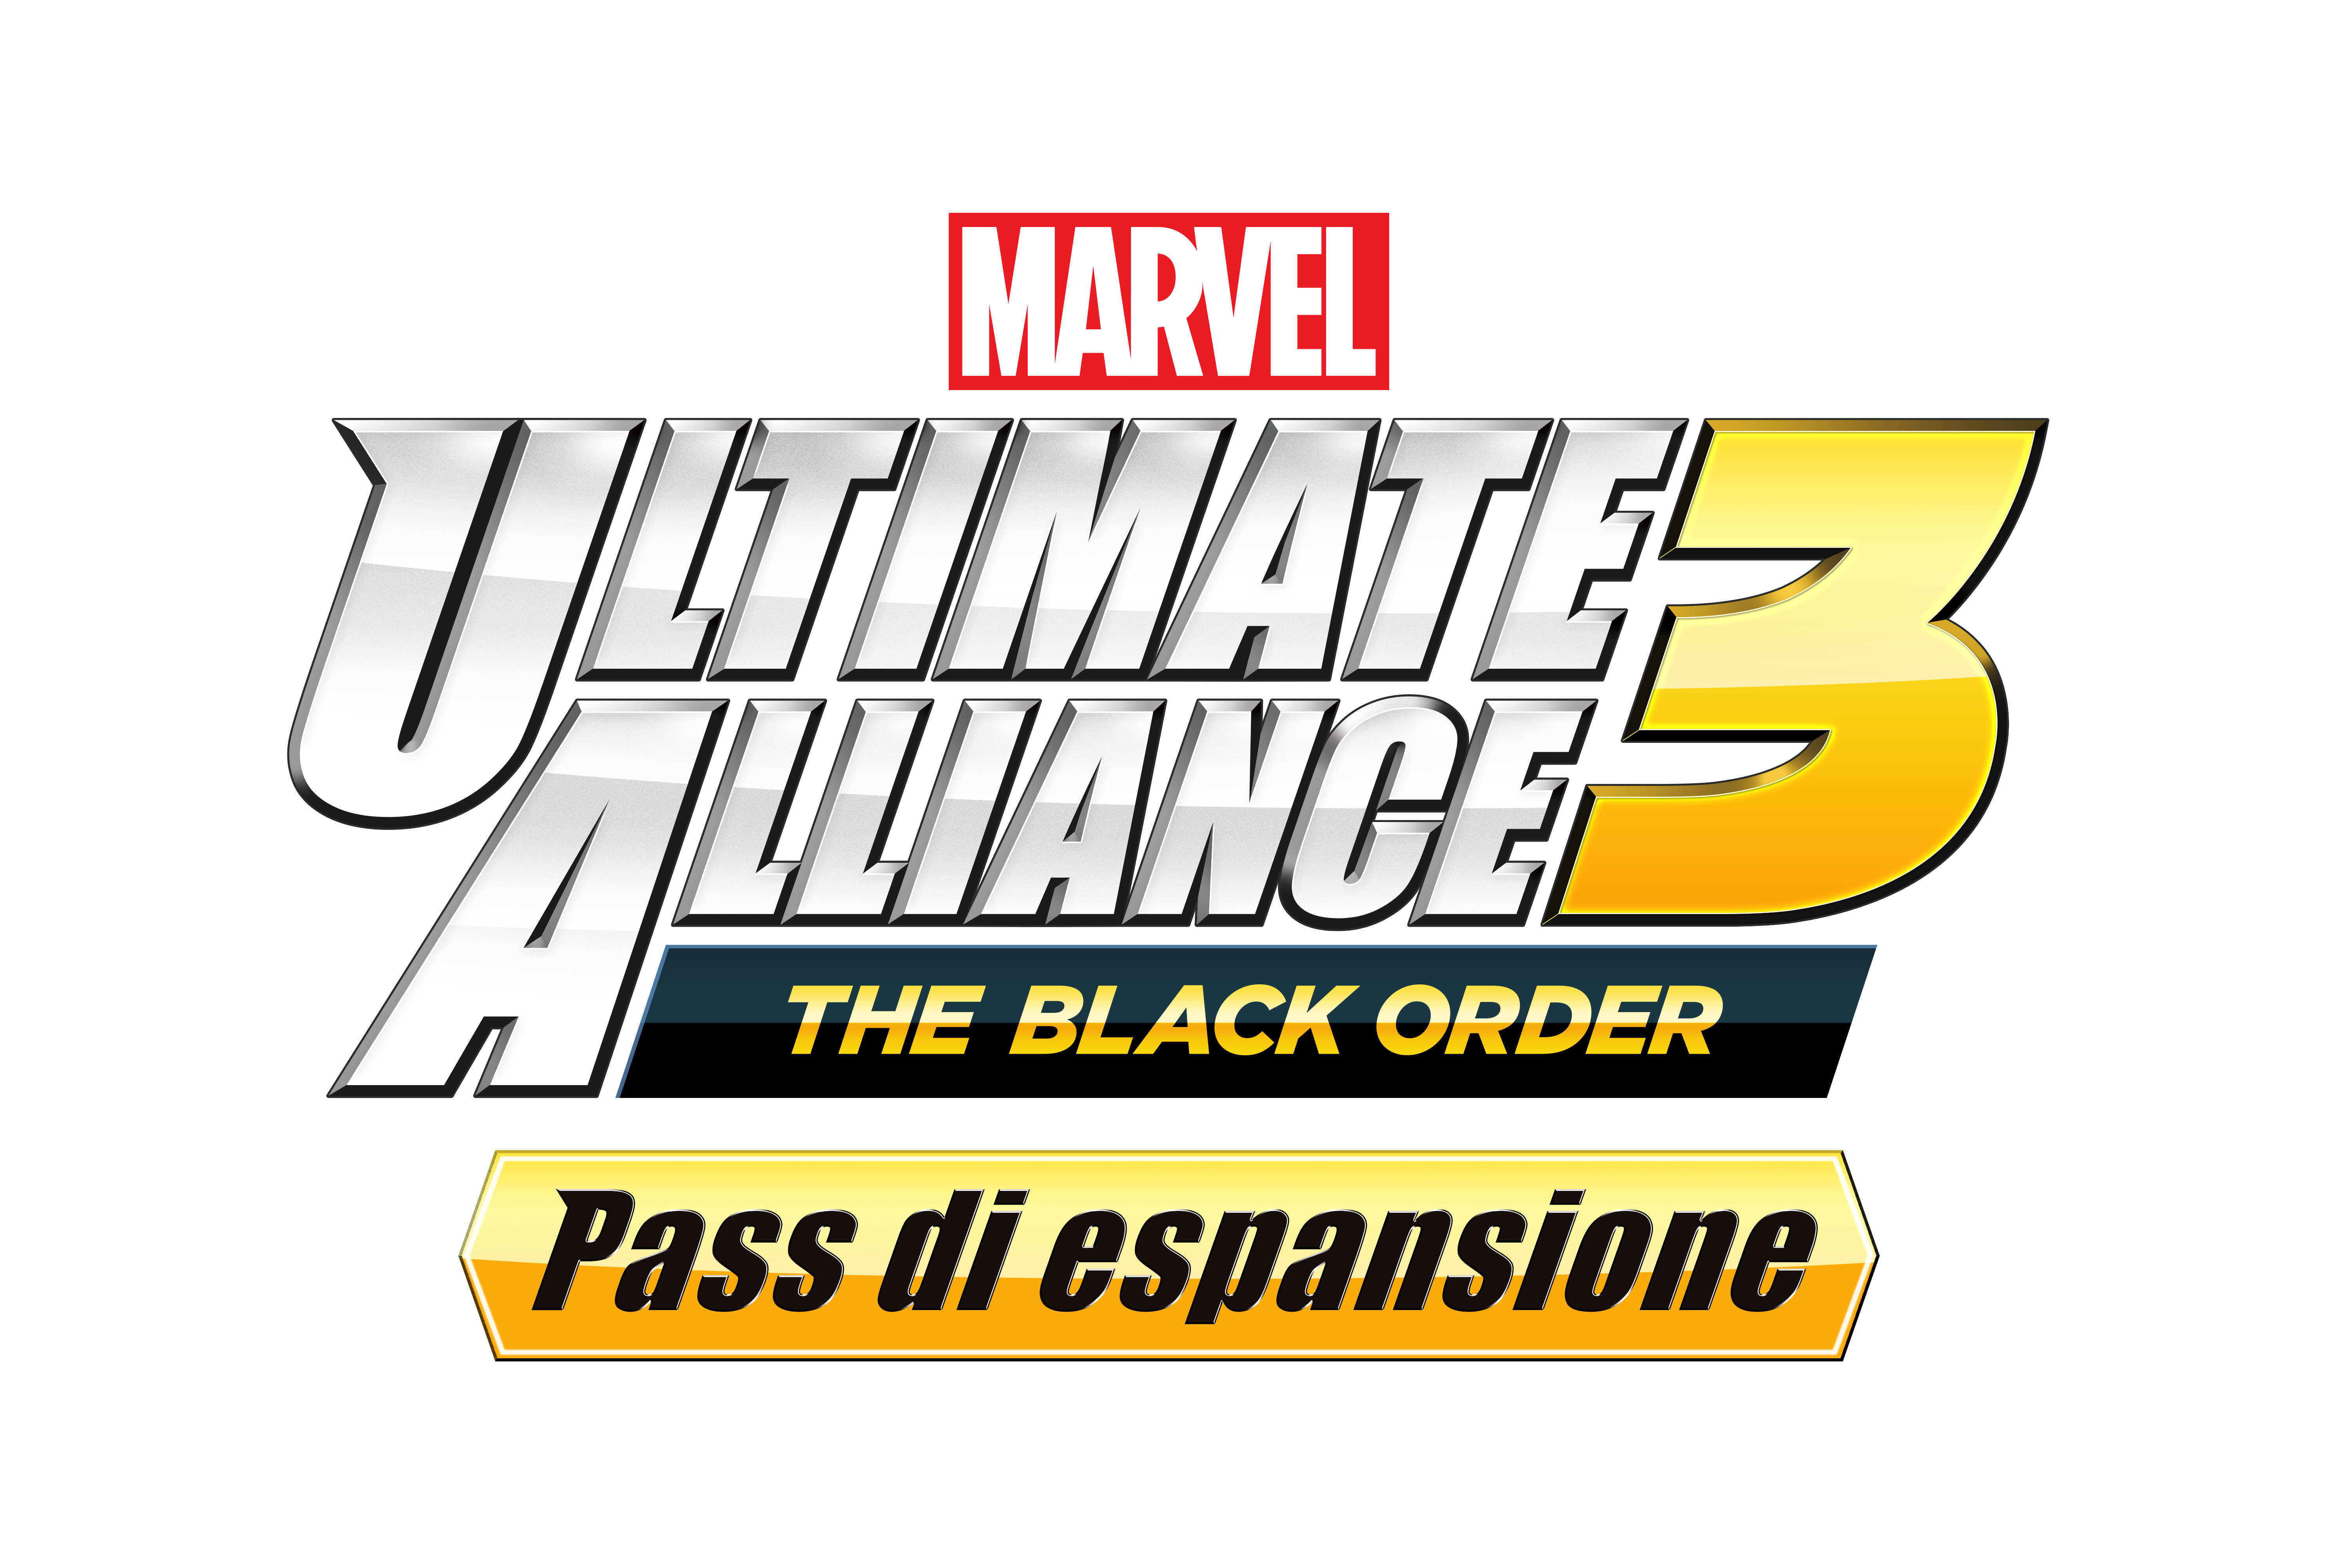 CI_NSwitch_MarvelUltimateAlliance3_DLC_IT.png